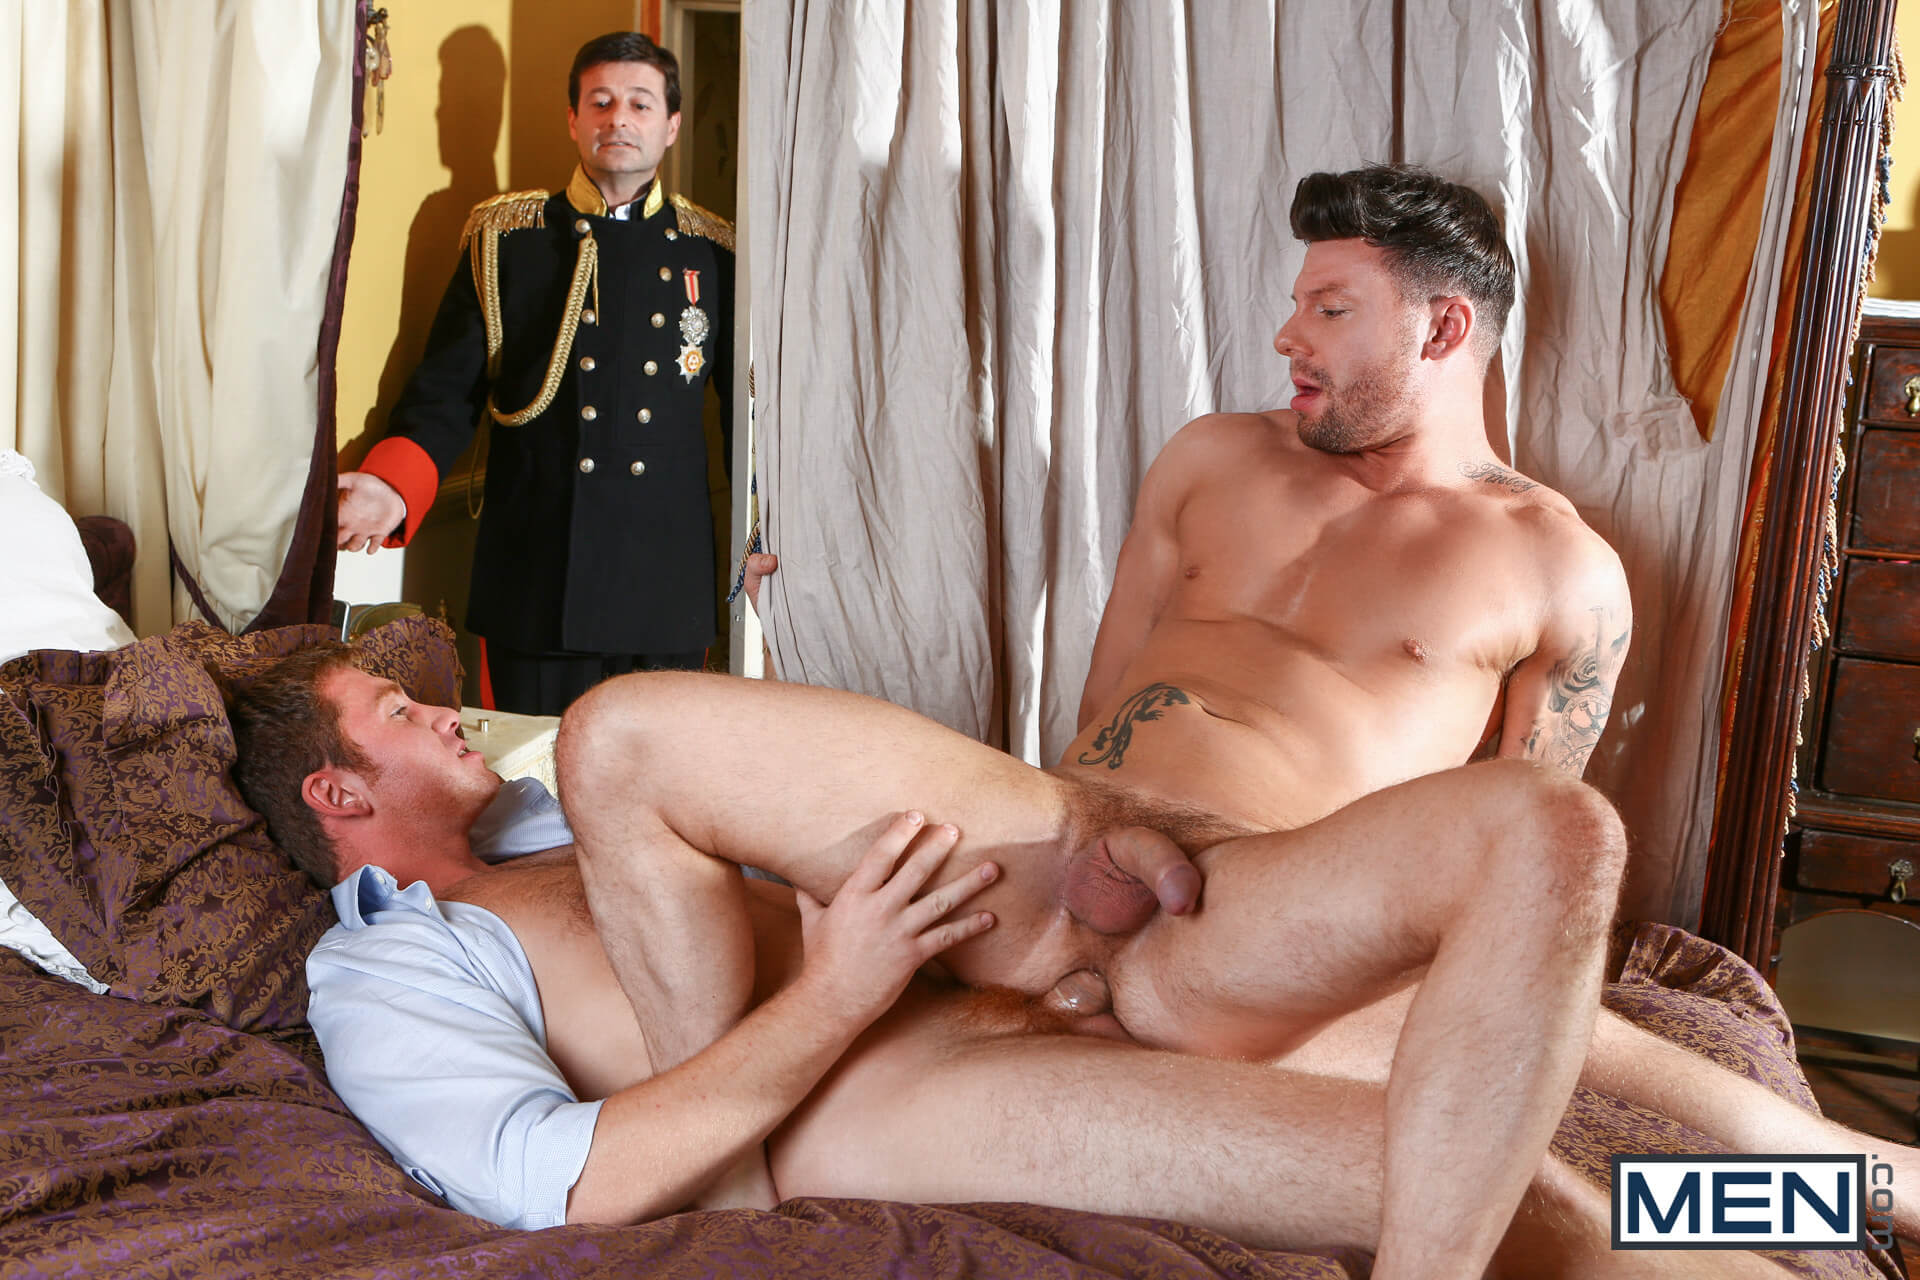 men men of uk a royal fuckfest part 1 connor maguire theo reid gay porn blog image 13